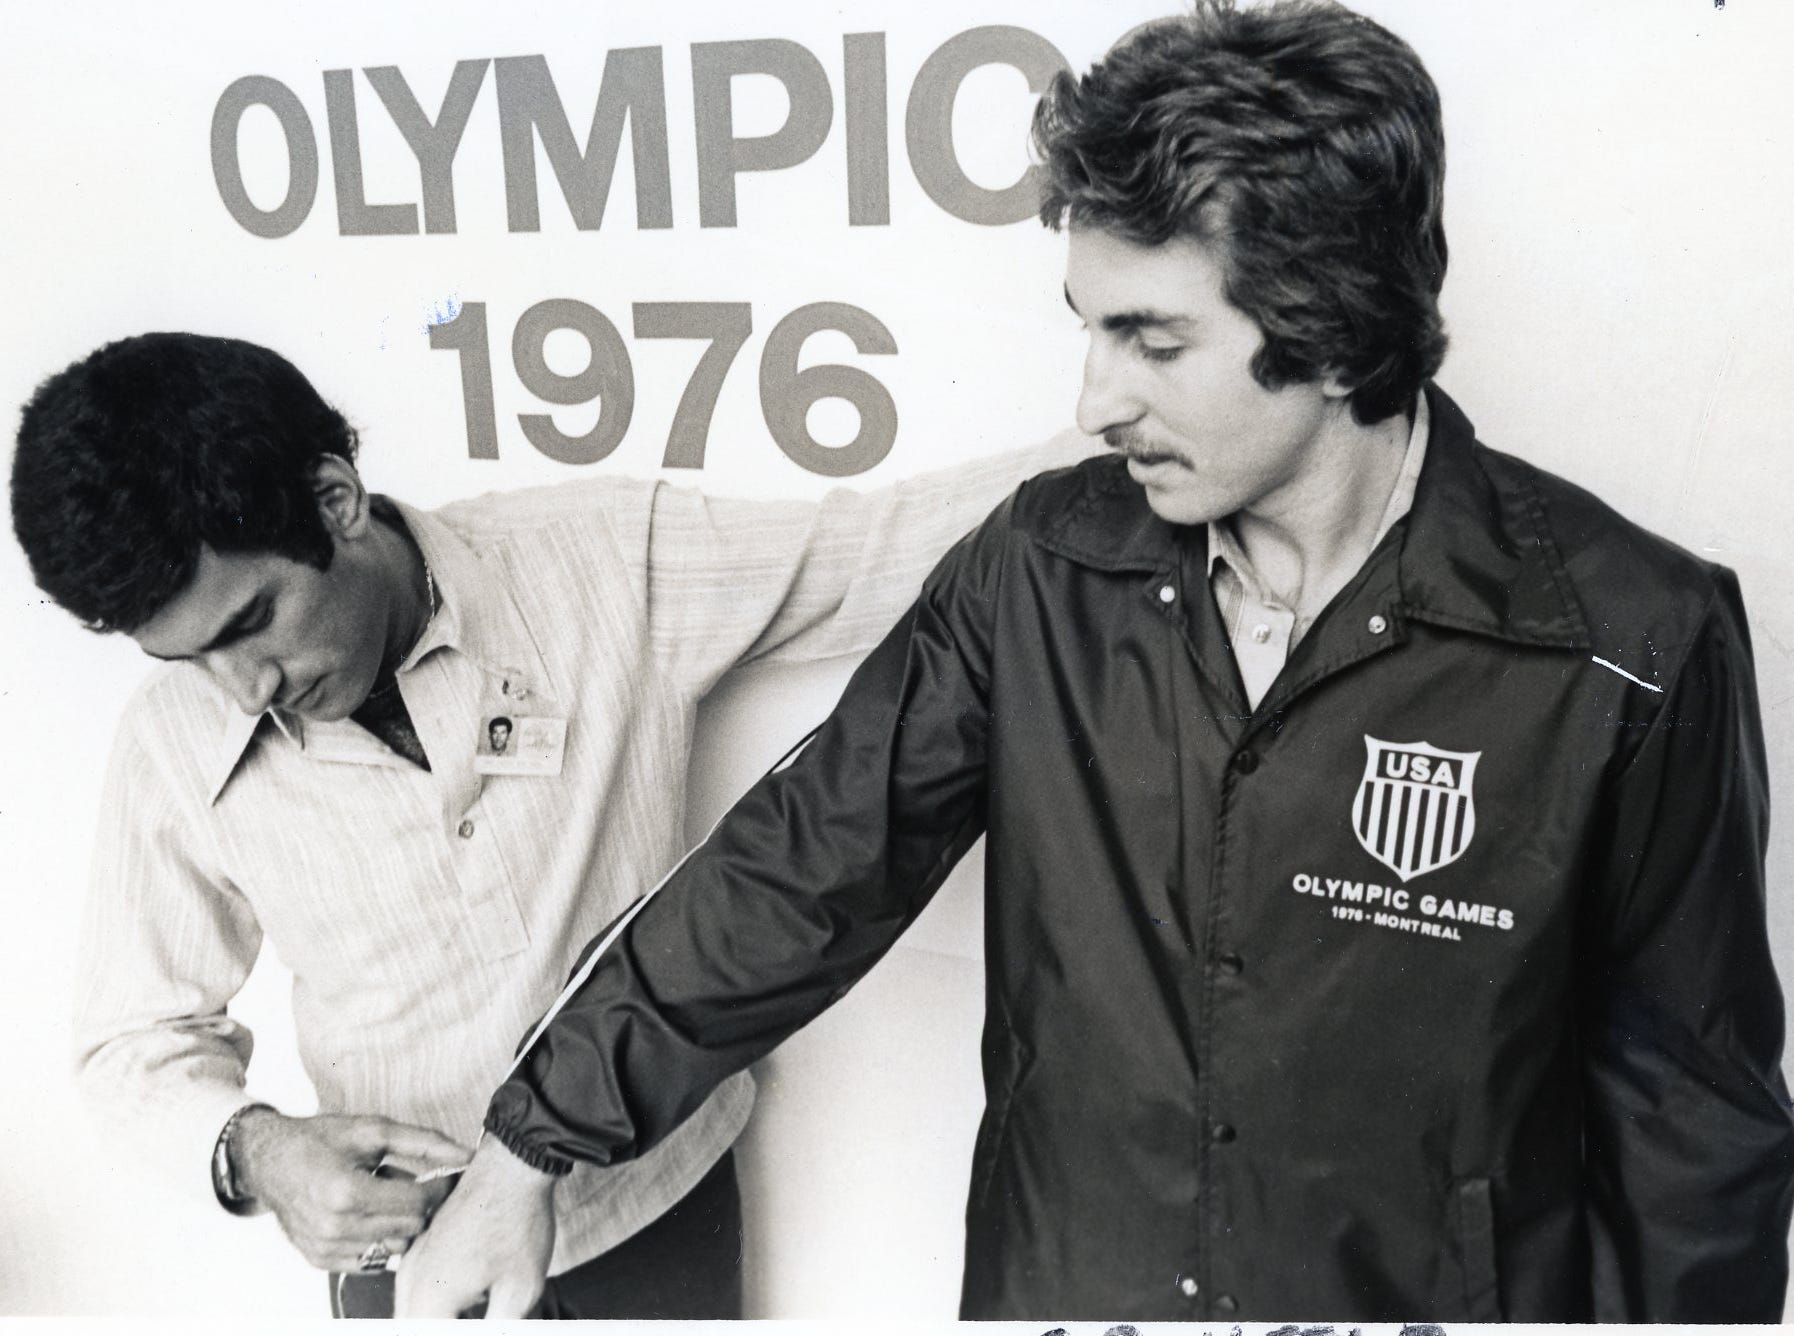 Ernie Grufeld, right, at the 1976 Olympic games.